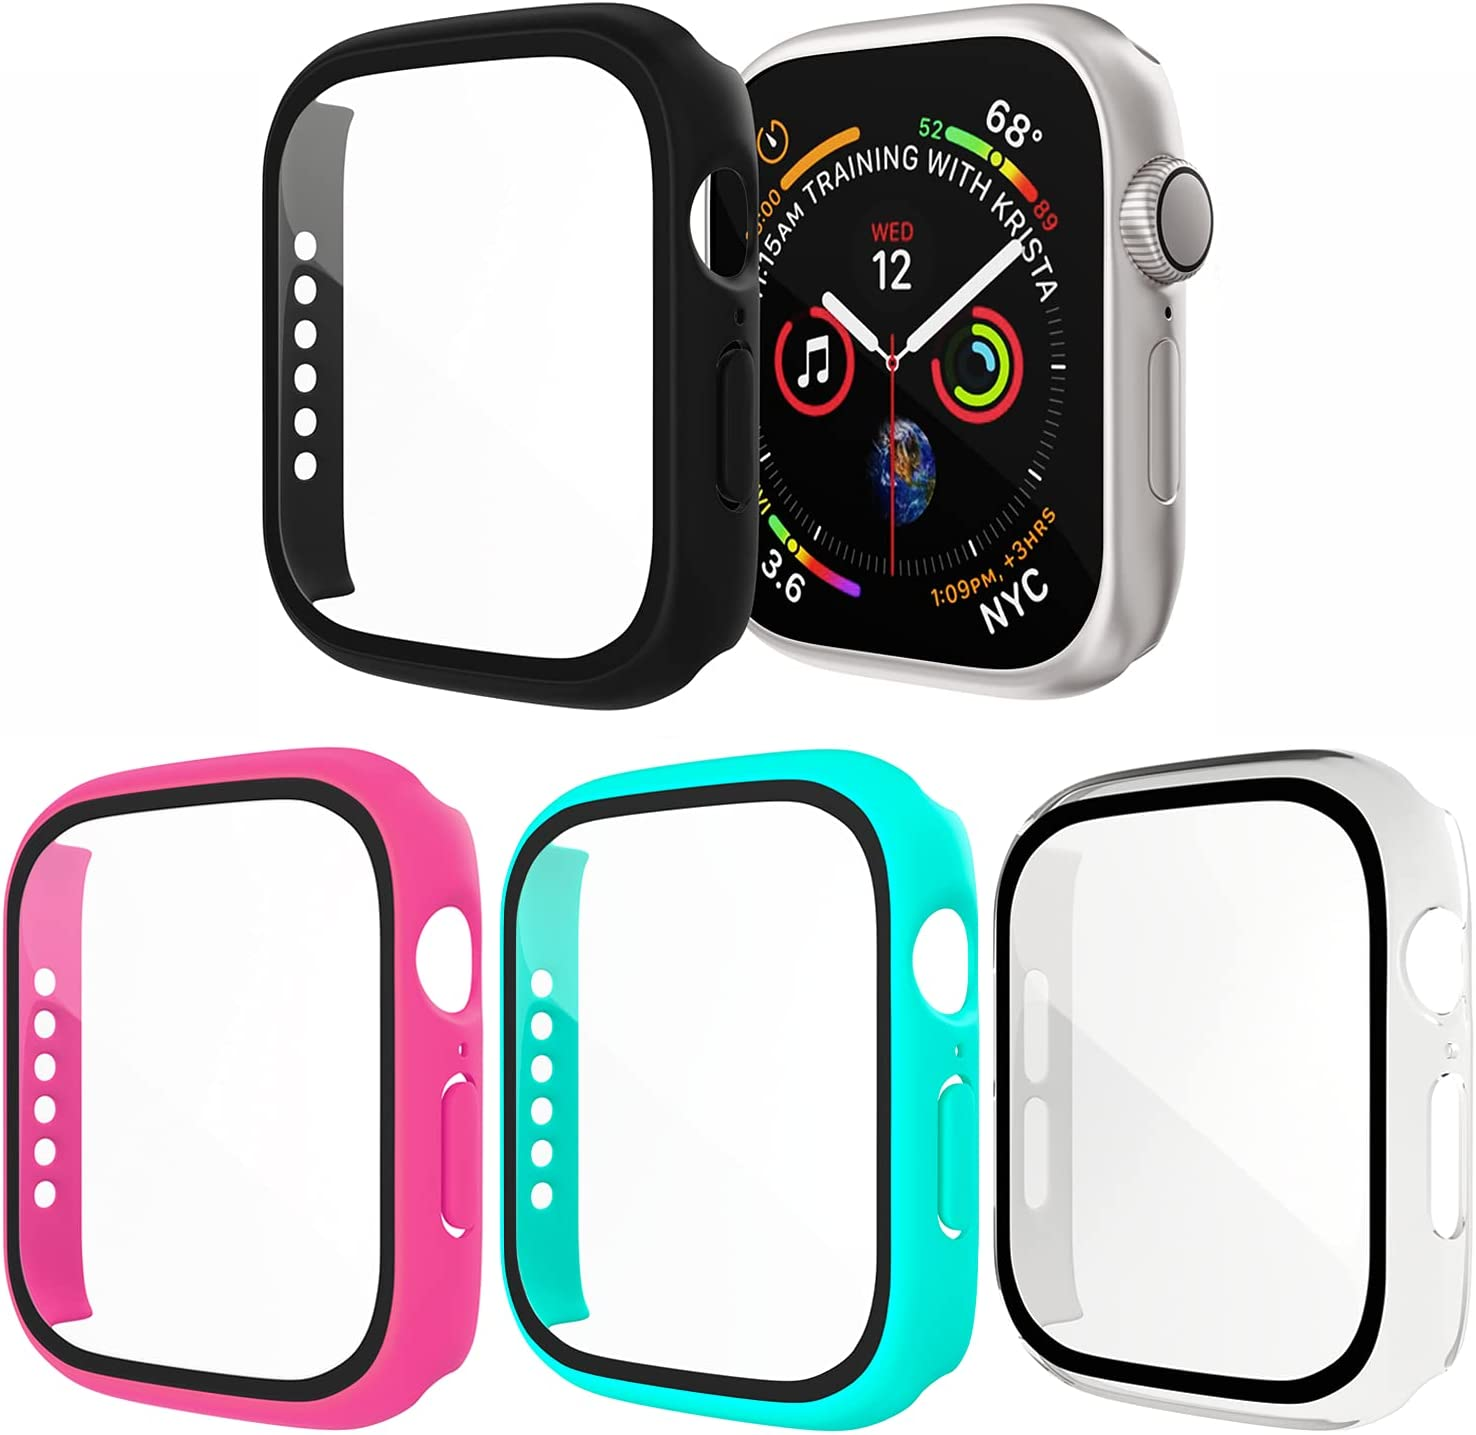 [4 Pack] Exclusives Compatible with Apple Watch 40mm Case, Full Coverage Bumper Protective Case with Screen Protector for Men Women iWatch Series 6/5/4/SE, Black, Clear, Hot Pink, Turquoise